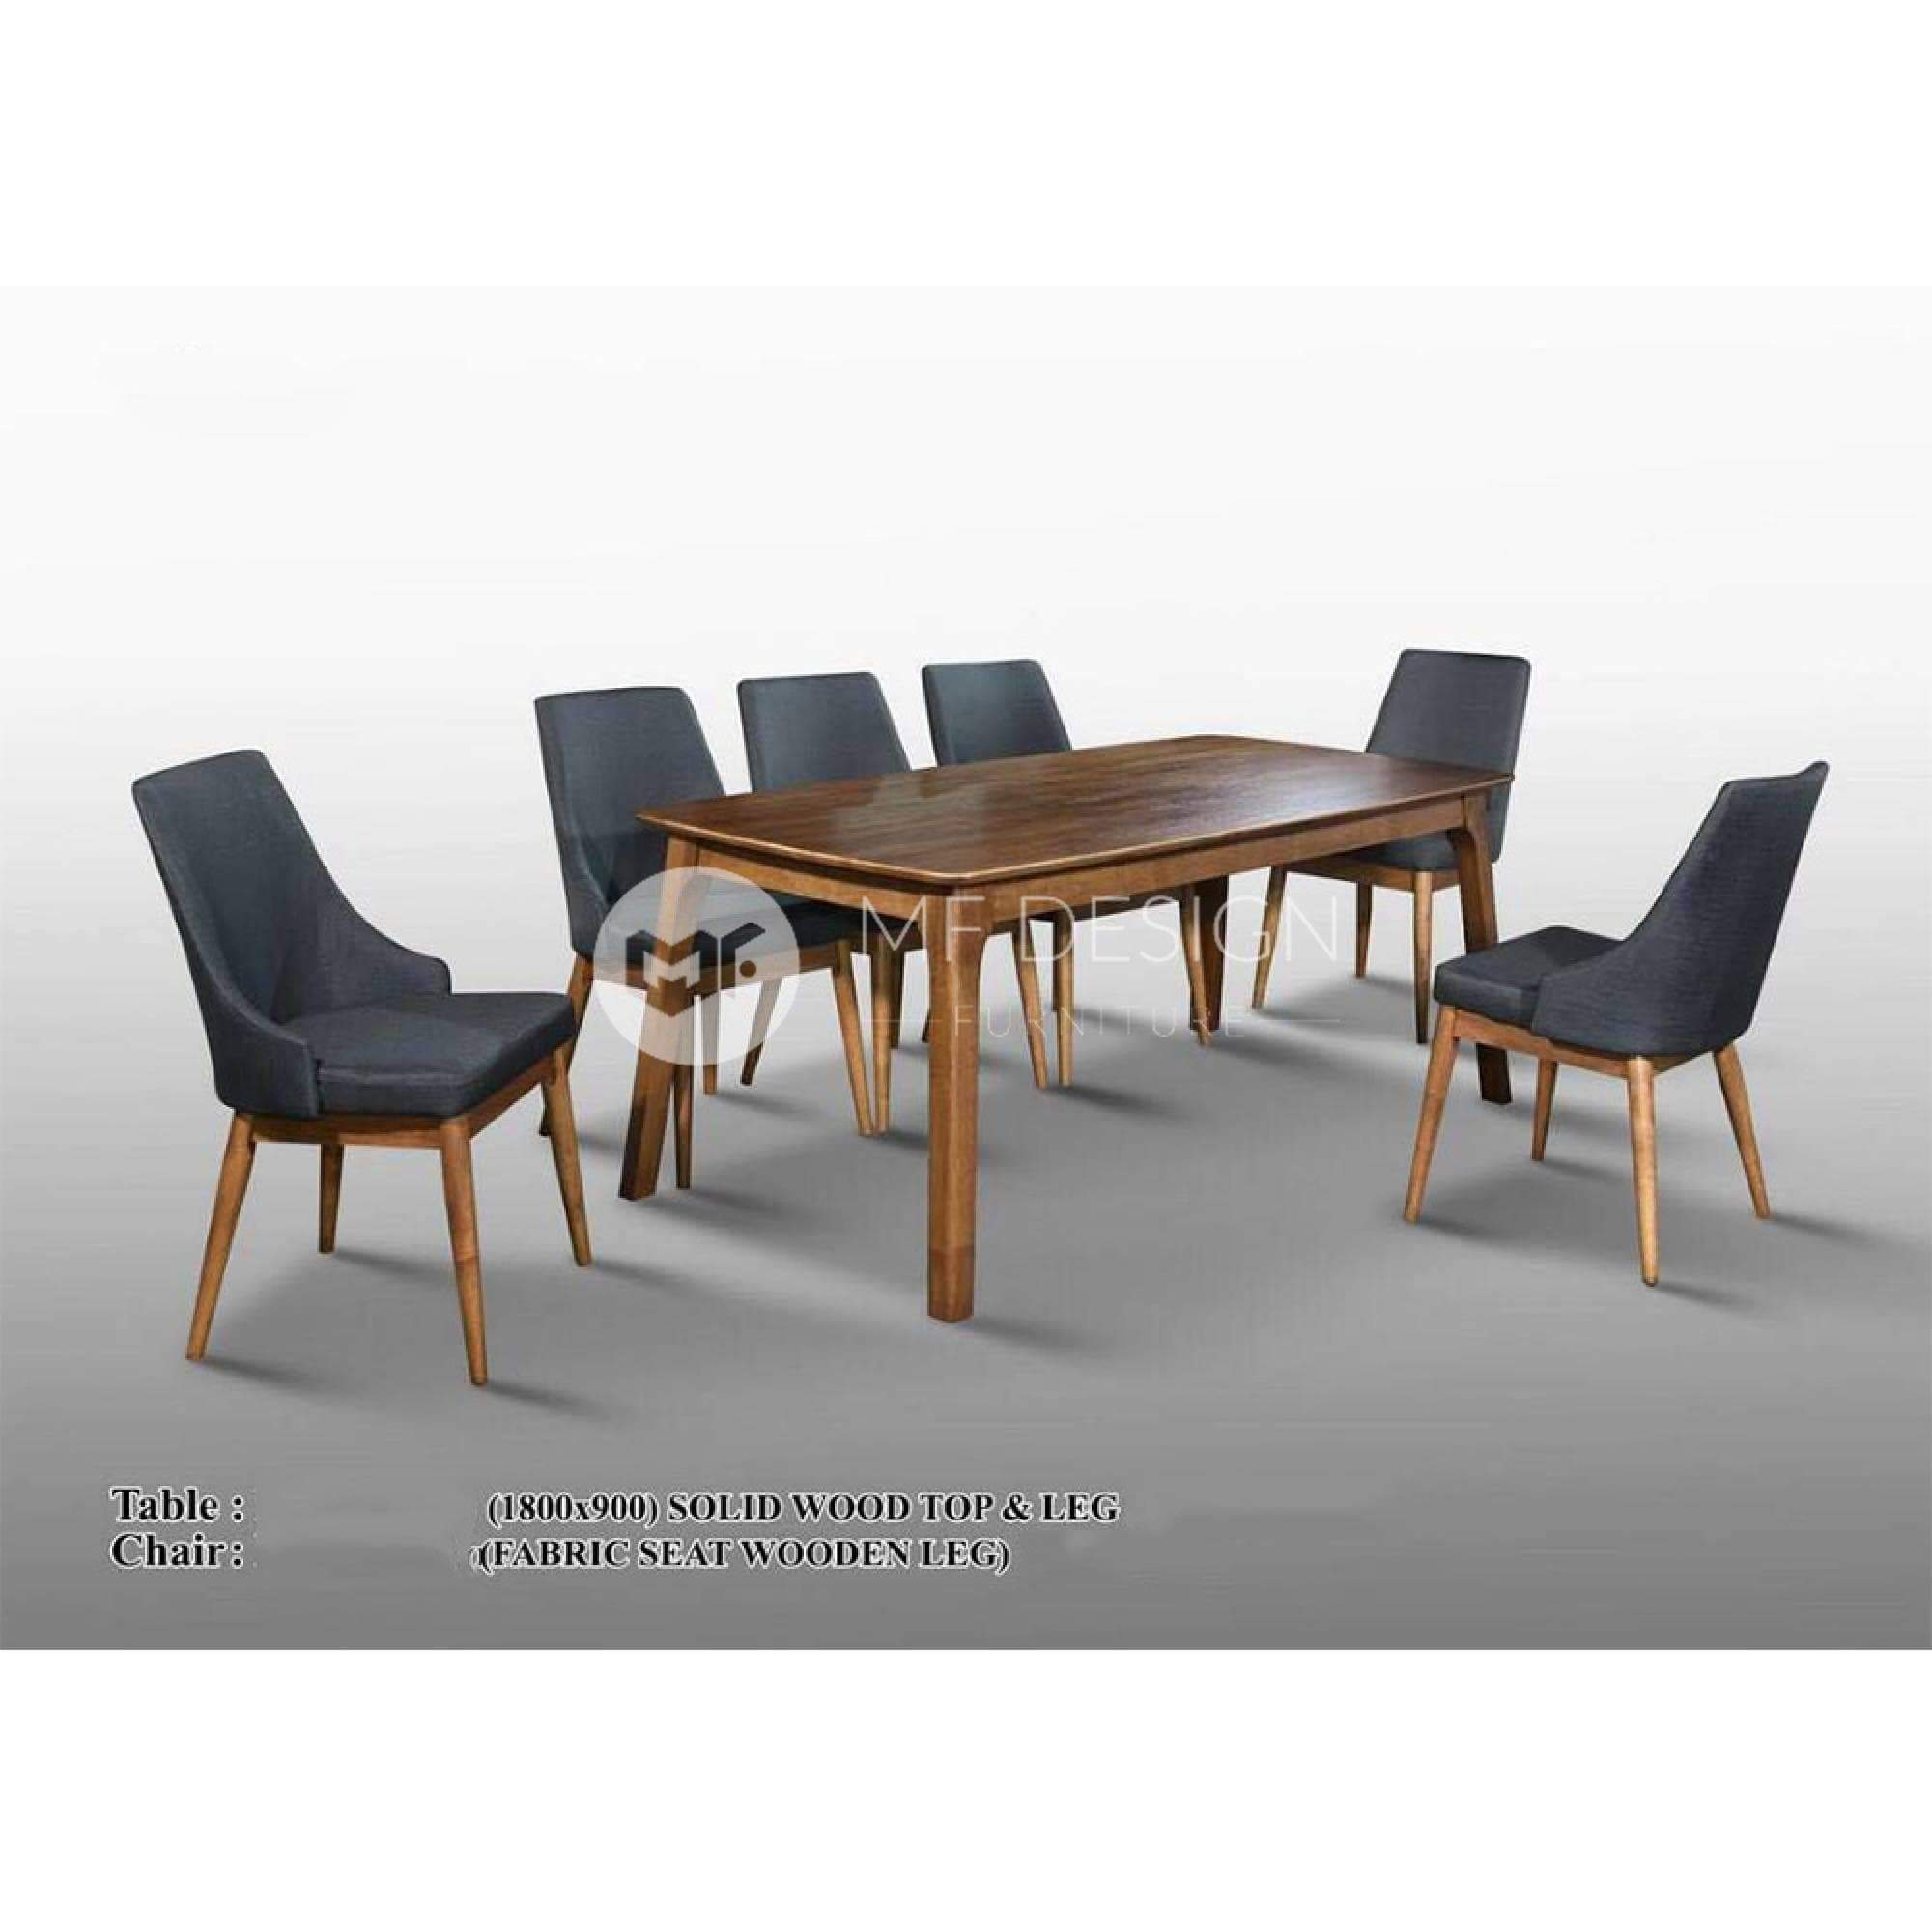 mfdesign88 Dining Sets Emilia Dining Set ( 1 Table + 6 Chairs )